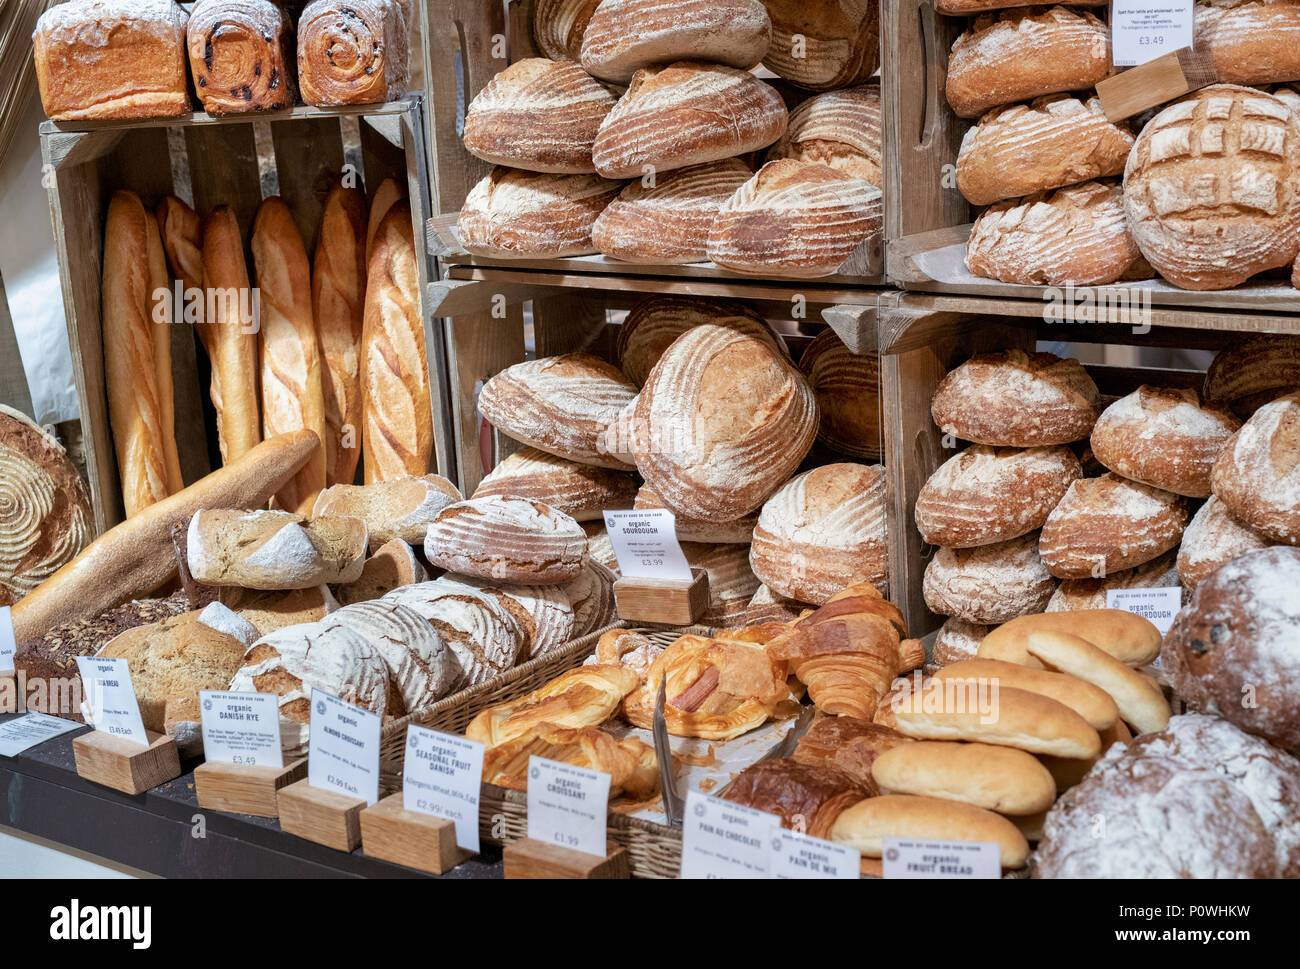 Bread for sale at Daylesford Organic farm summer festival. Daylesford, Cotswolds, Gloucestershire, England - Stock Image